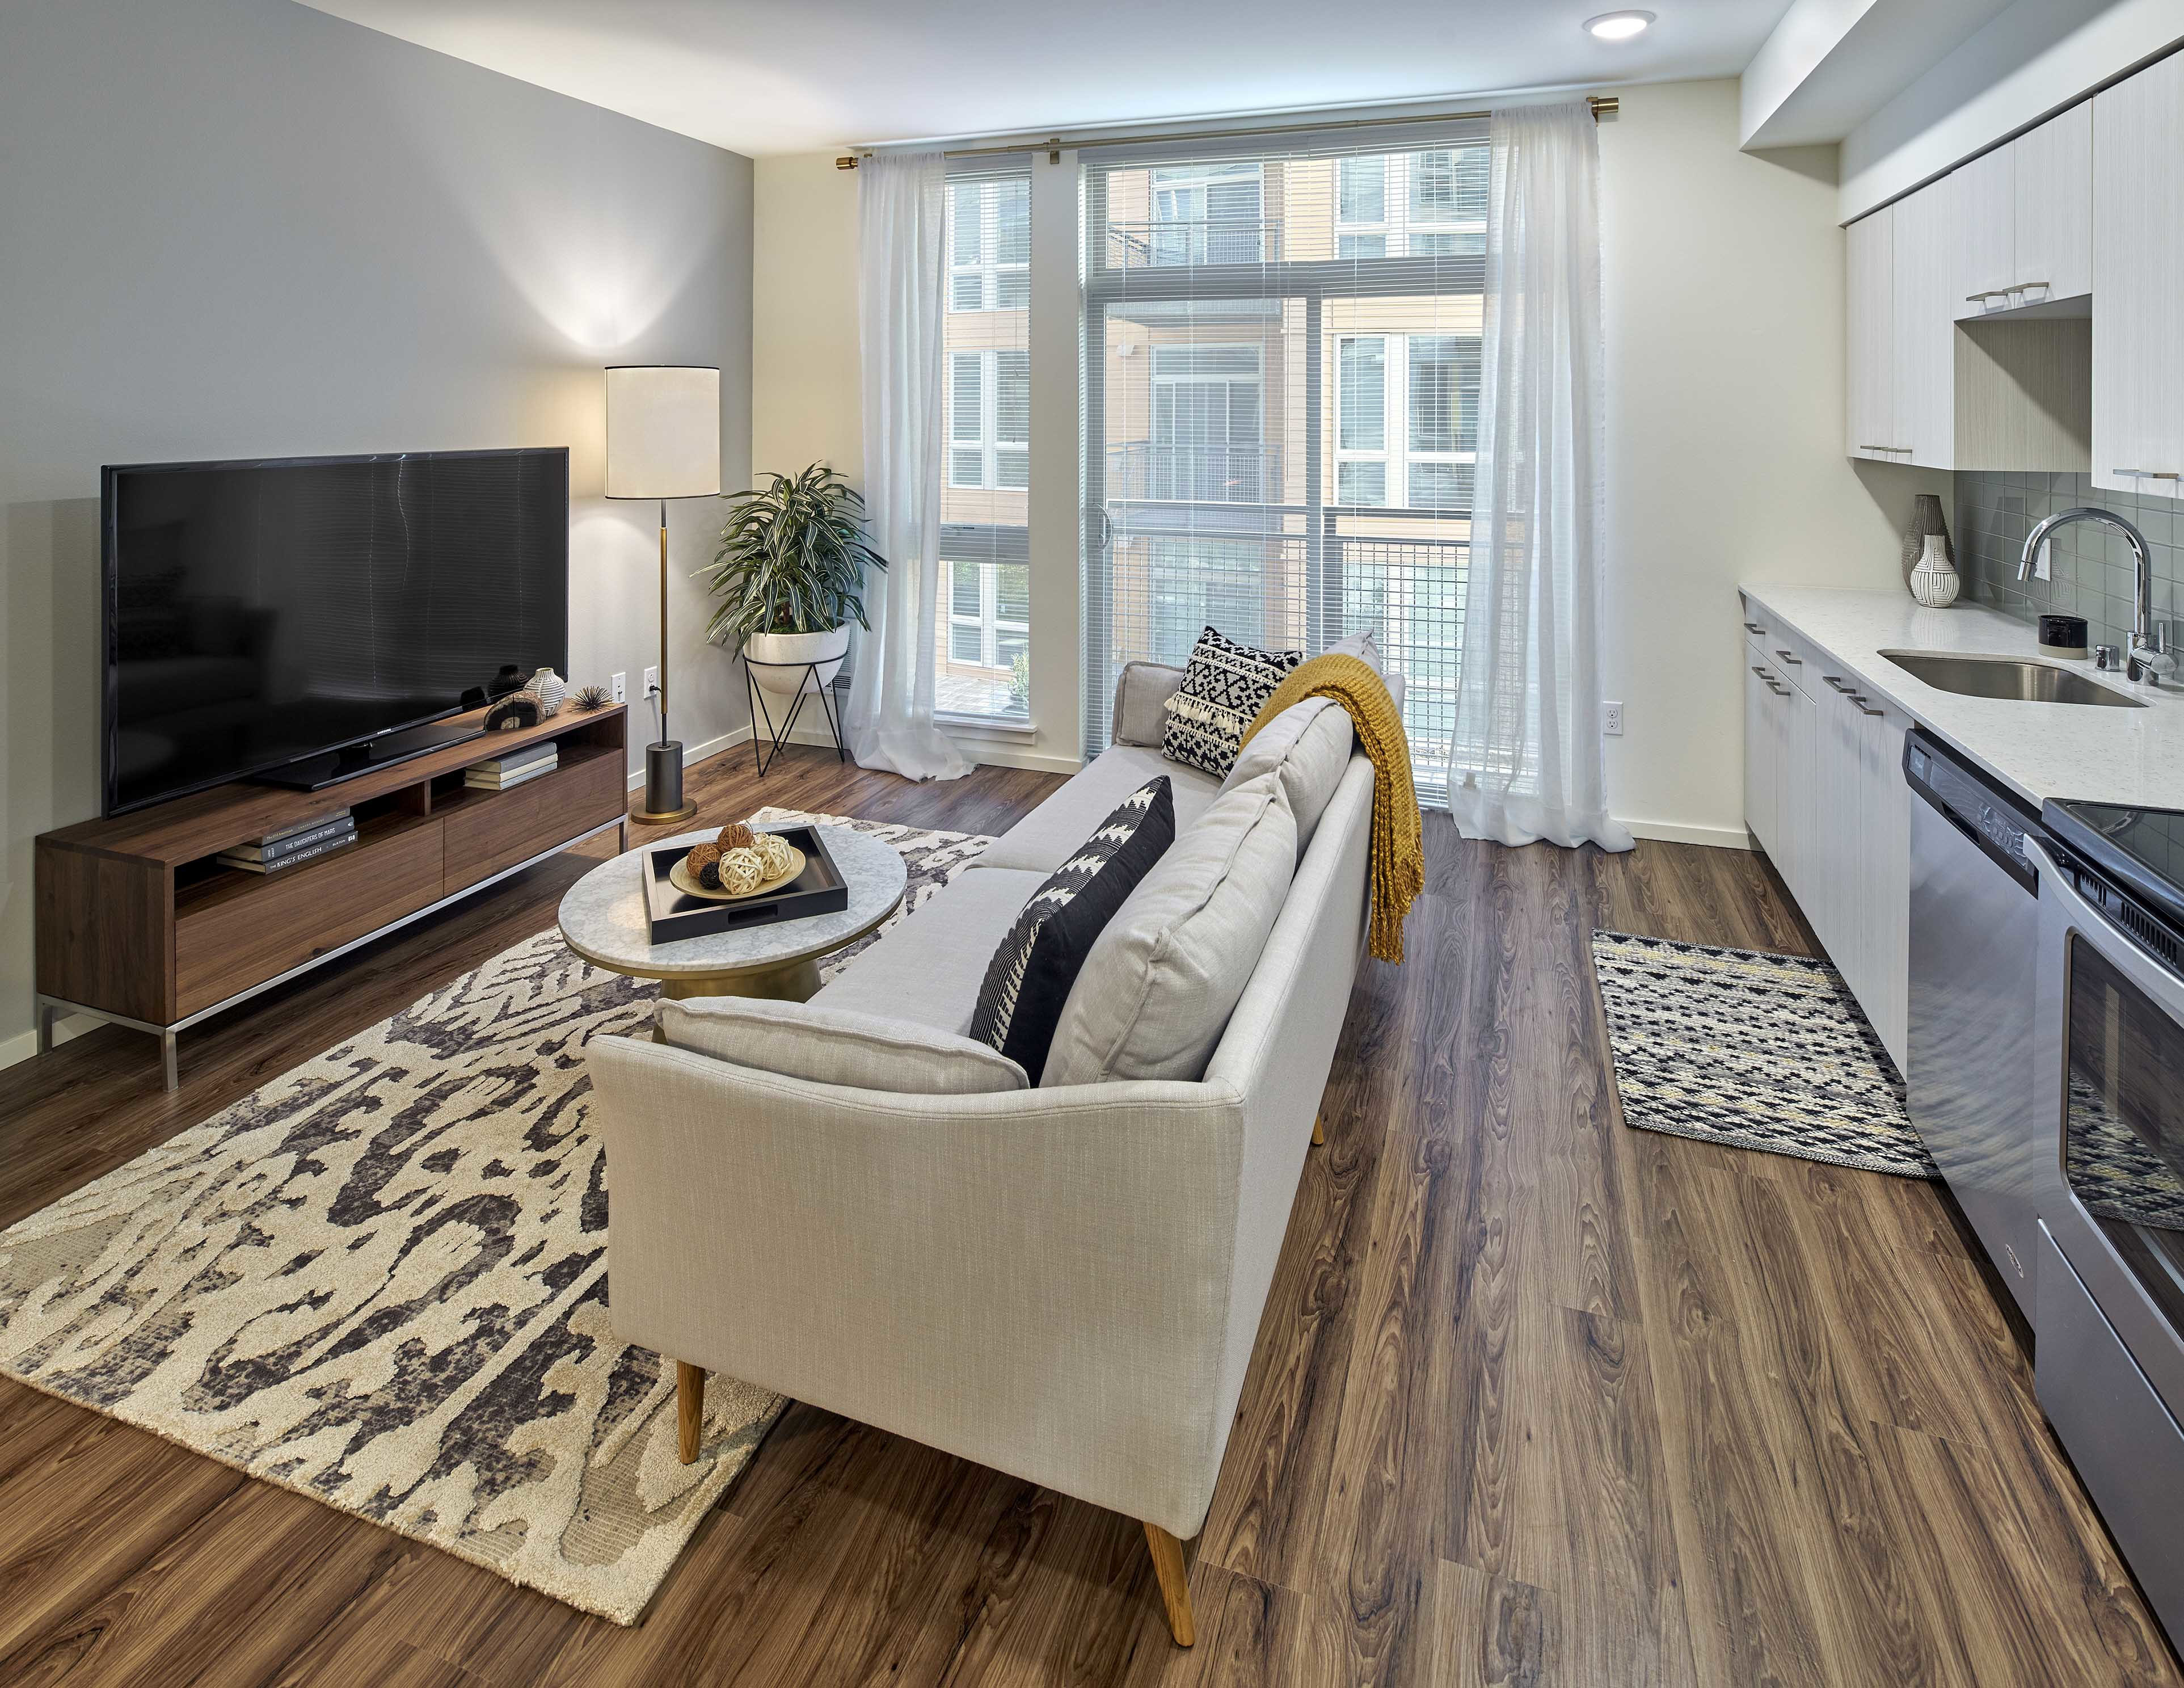 hardwood flooring auburn al of 20 best studio apartments in renton wa with pictures for e0651a0e385dbb4465dda921098a84a3